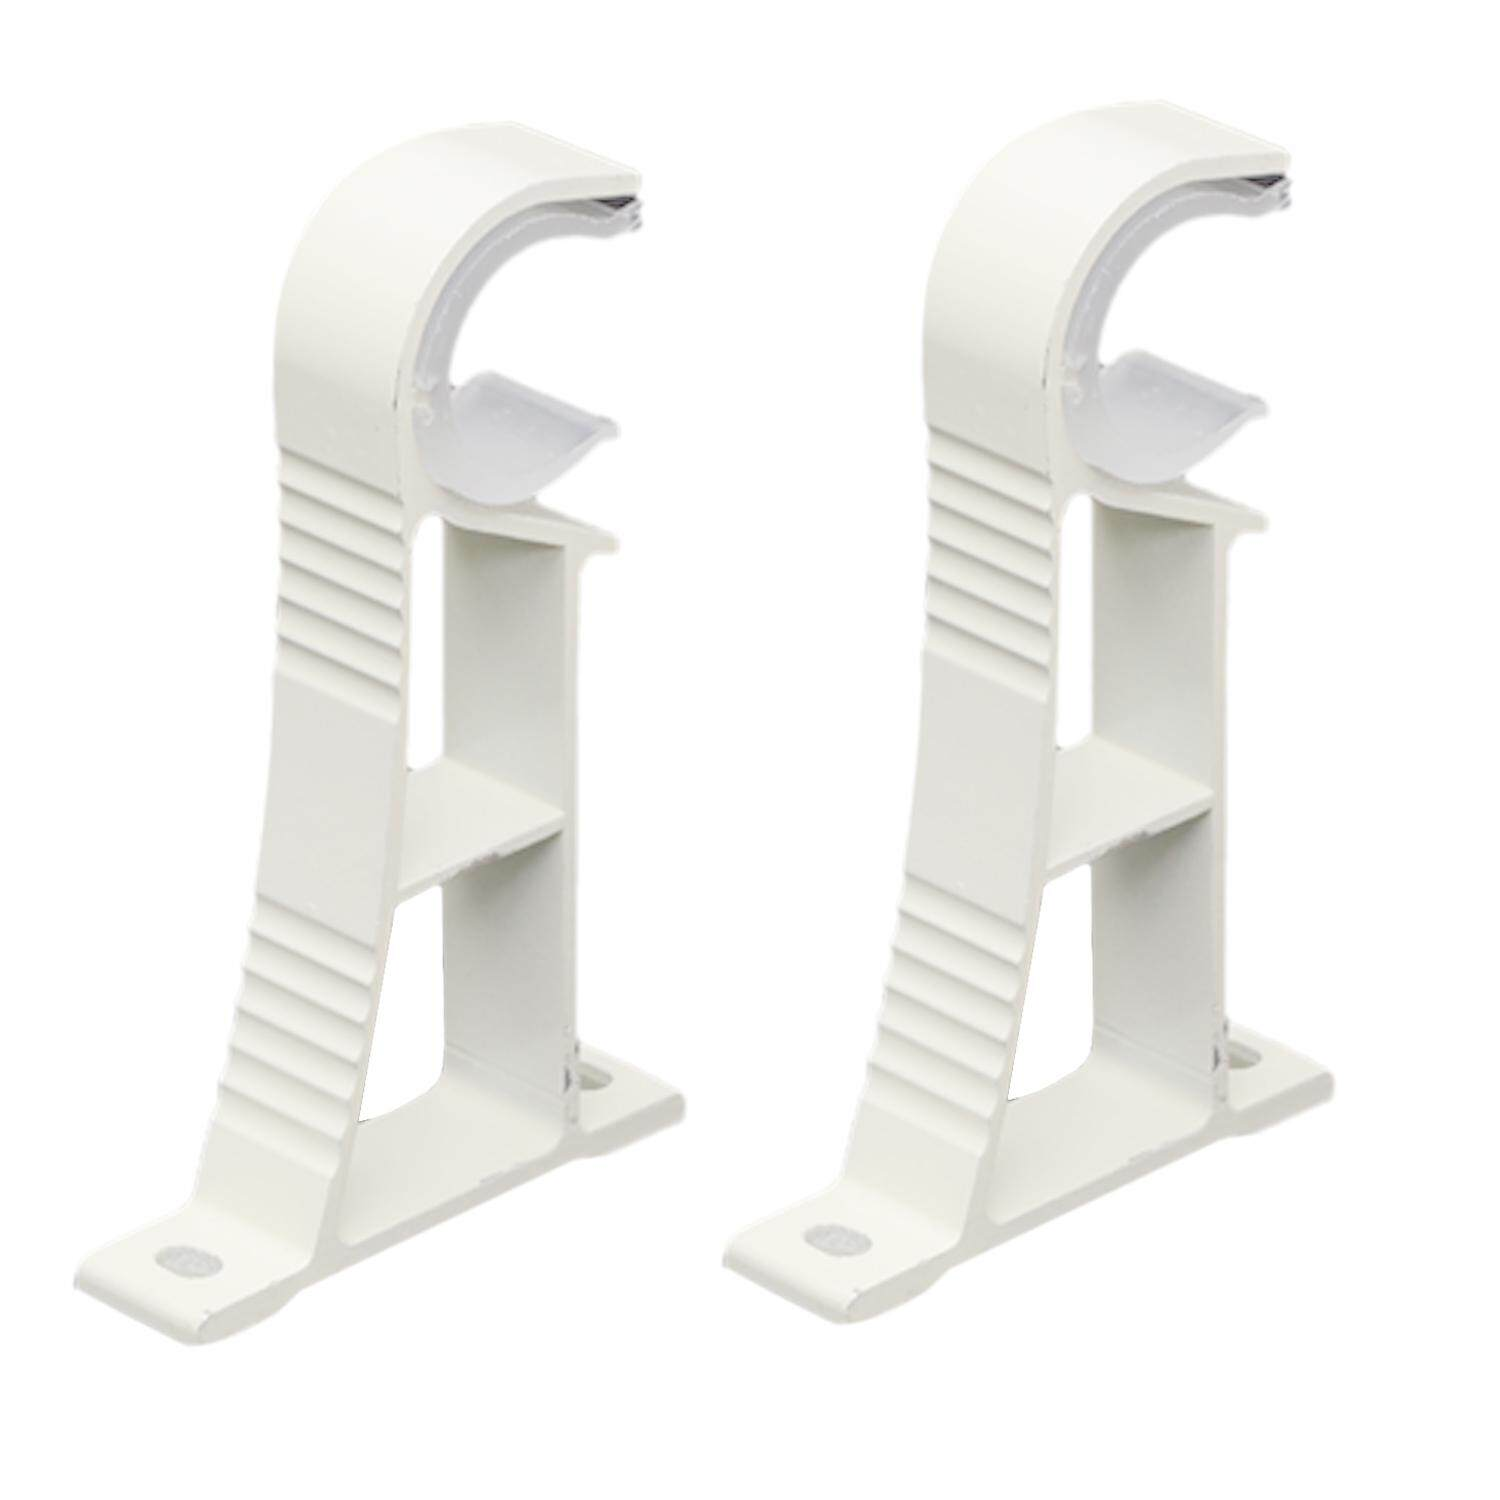 2 Pcs Curtain Rod Drapery Pole Single Aluminum Alloy Bracket White By Stoneky.